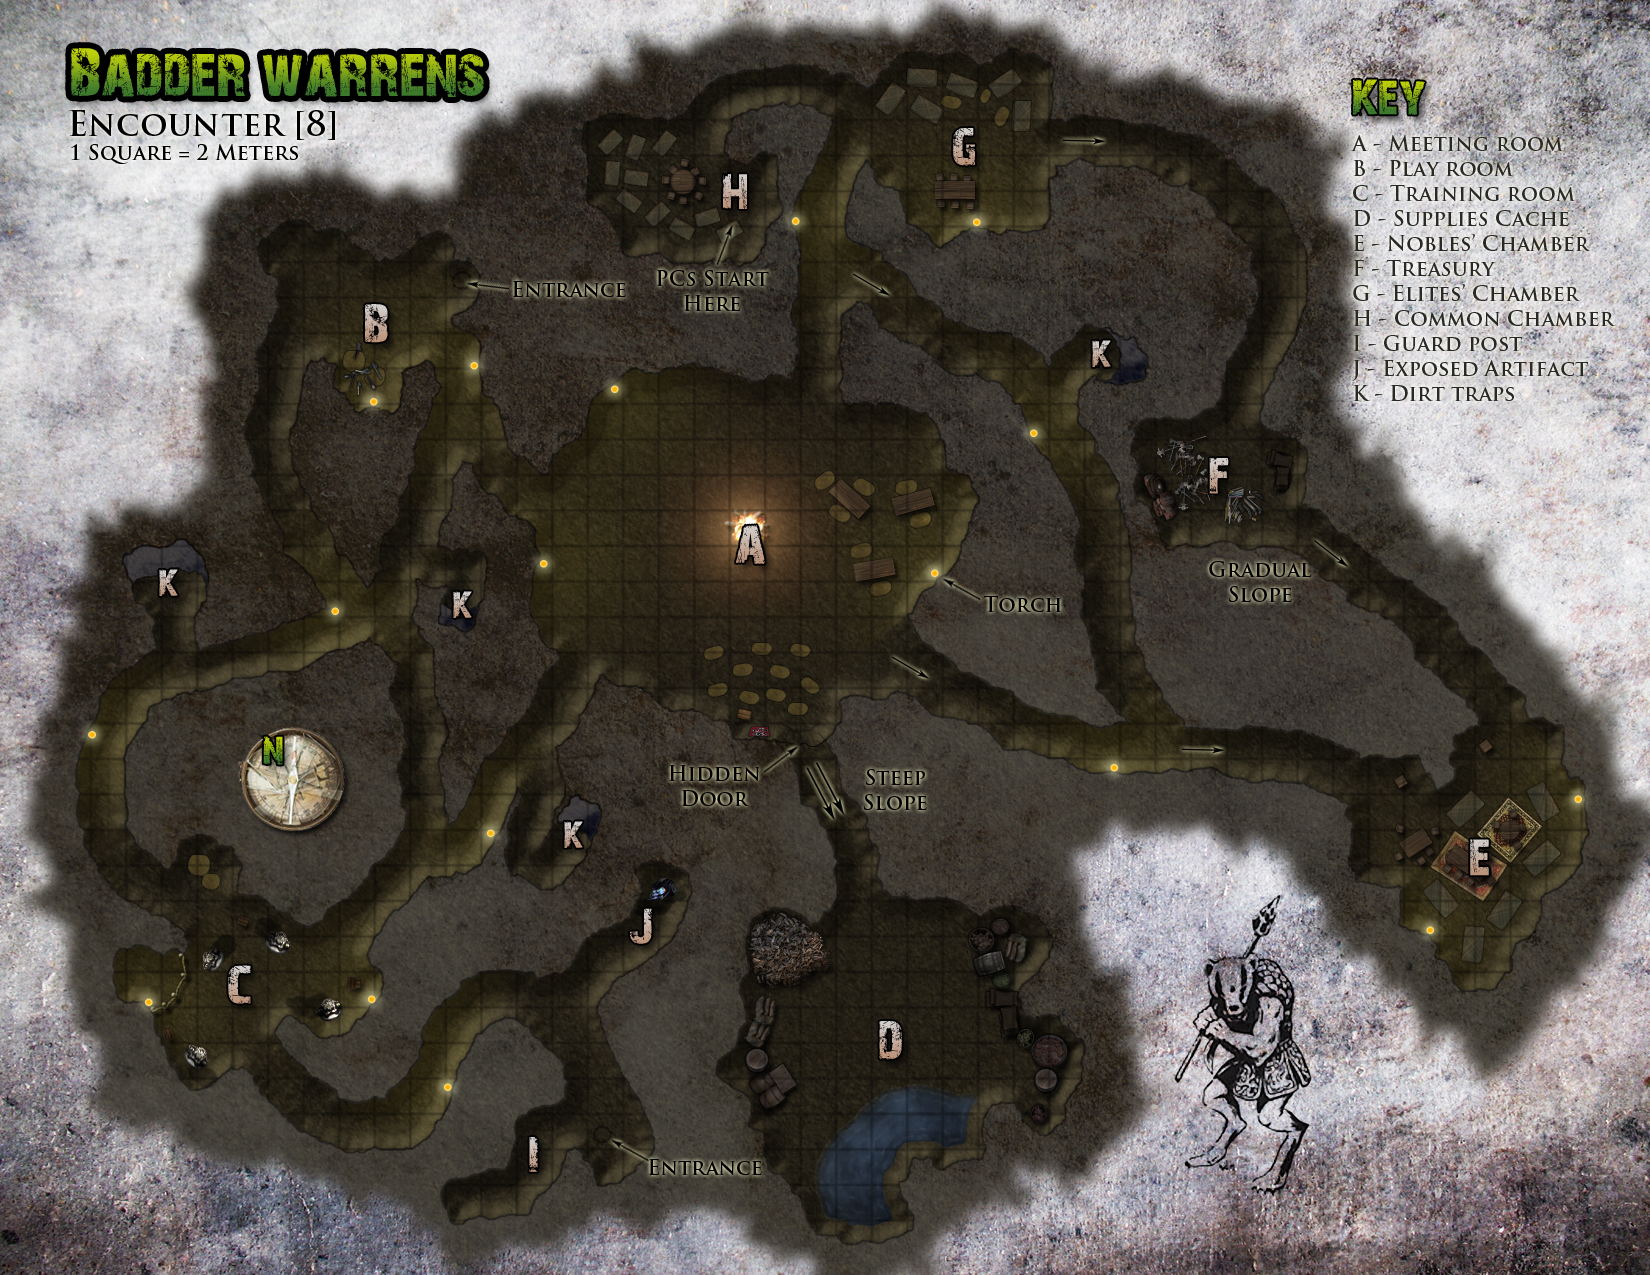 Famine in Far-Go badder warren map. A remake of a map for the old TSR Gamma World module.